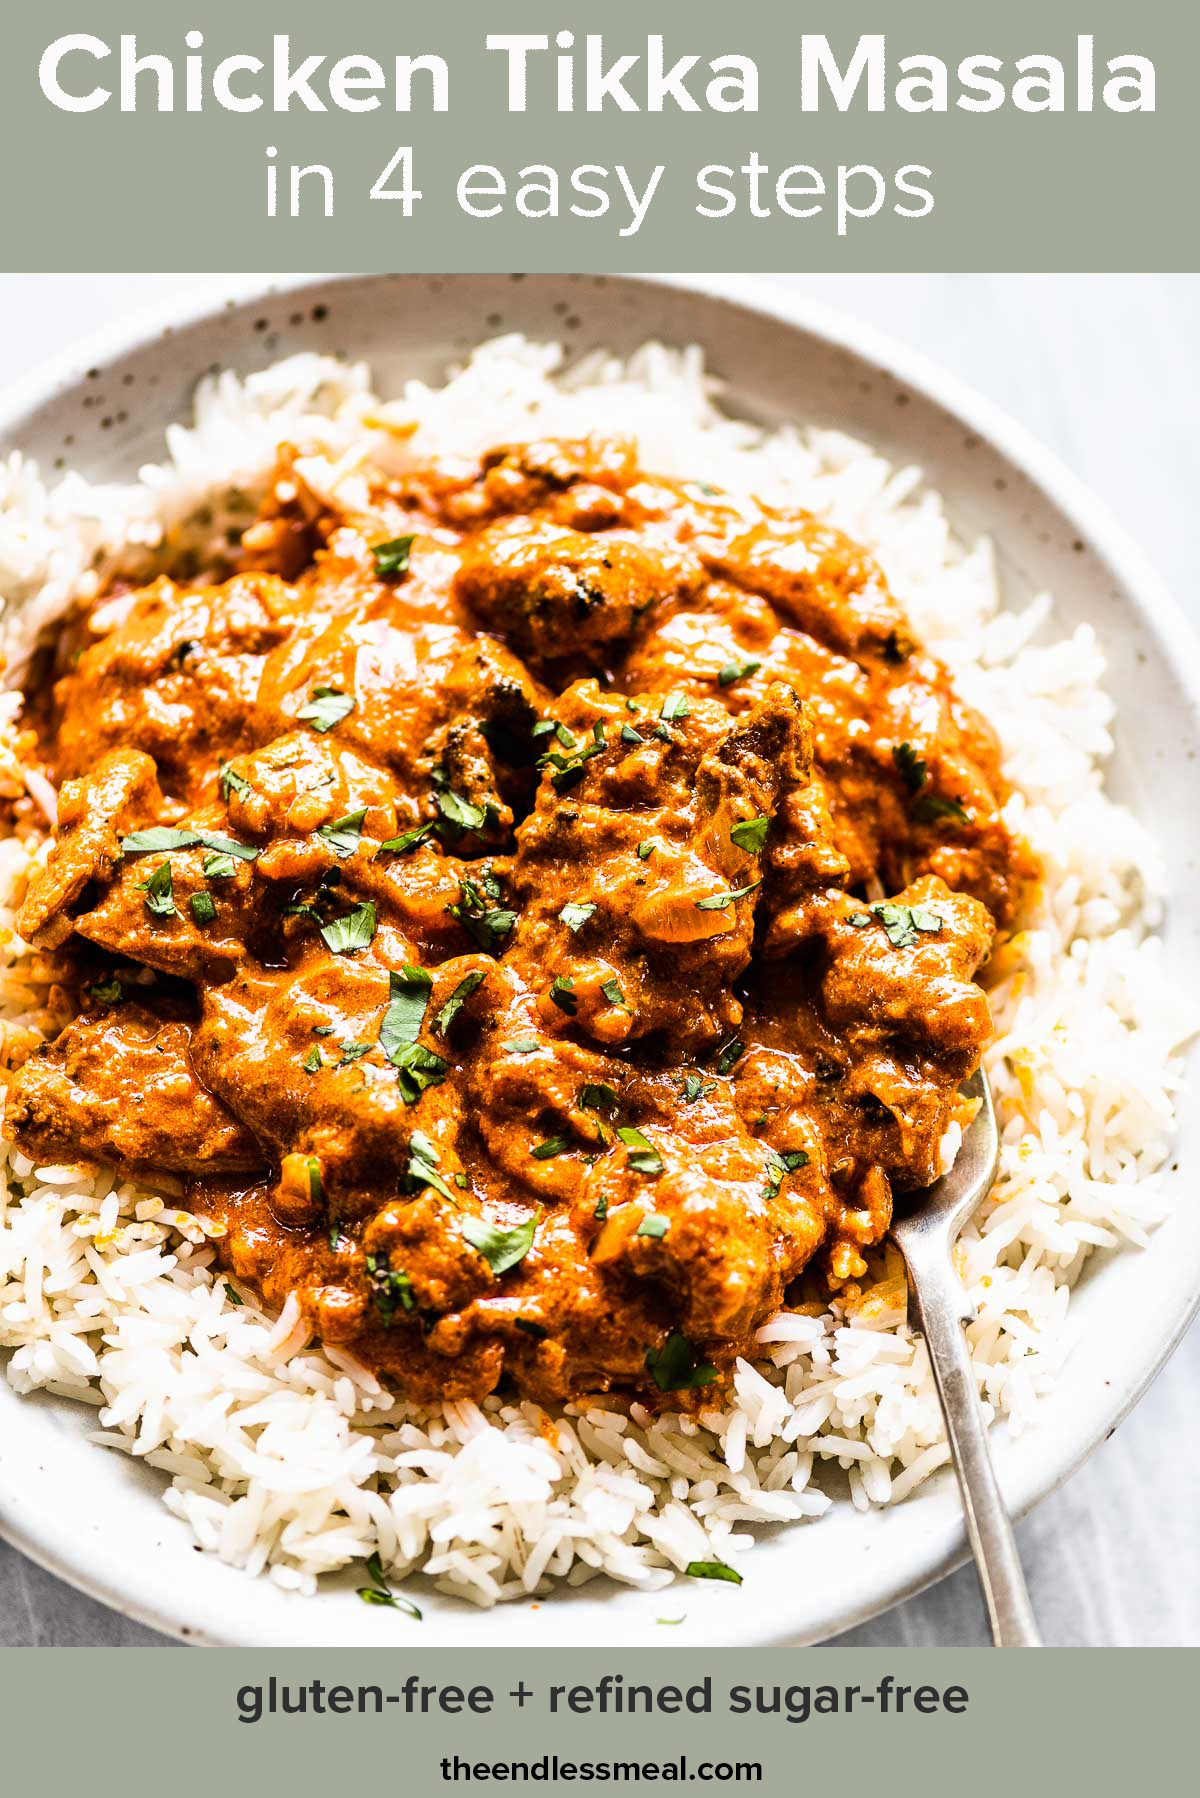 Chicken tikka masala on rice with a fork with the recipe title on top of the picture.